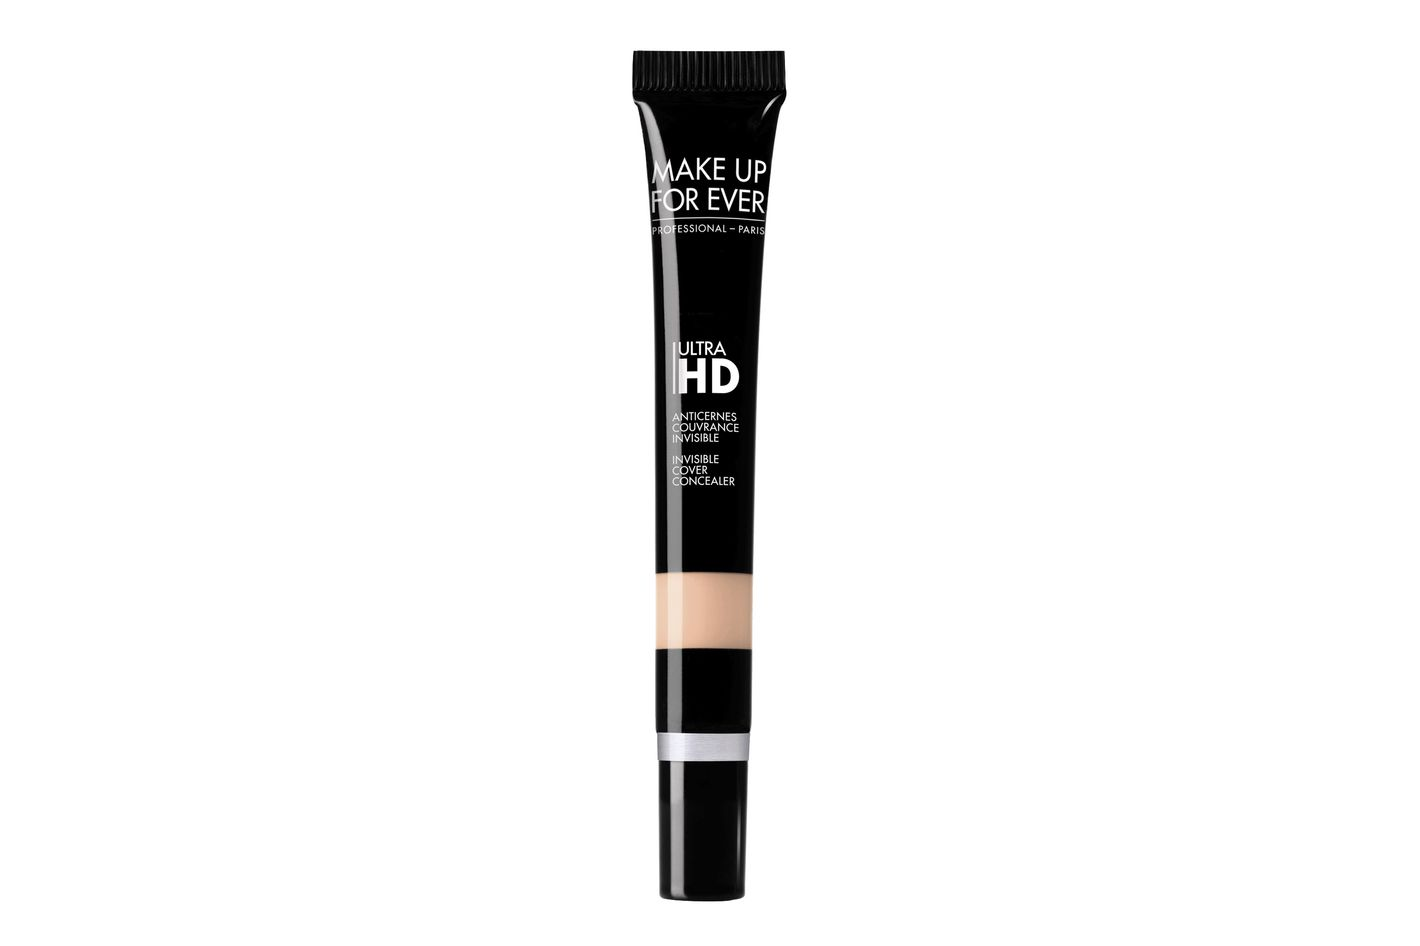 Make Up For Ever Ultra HD Concealer.